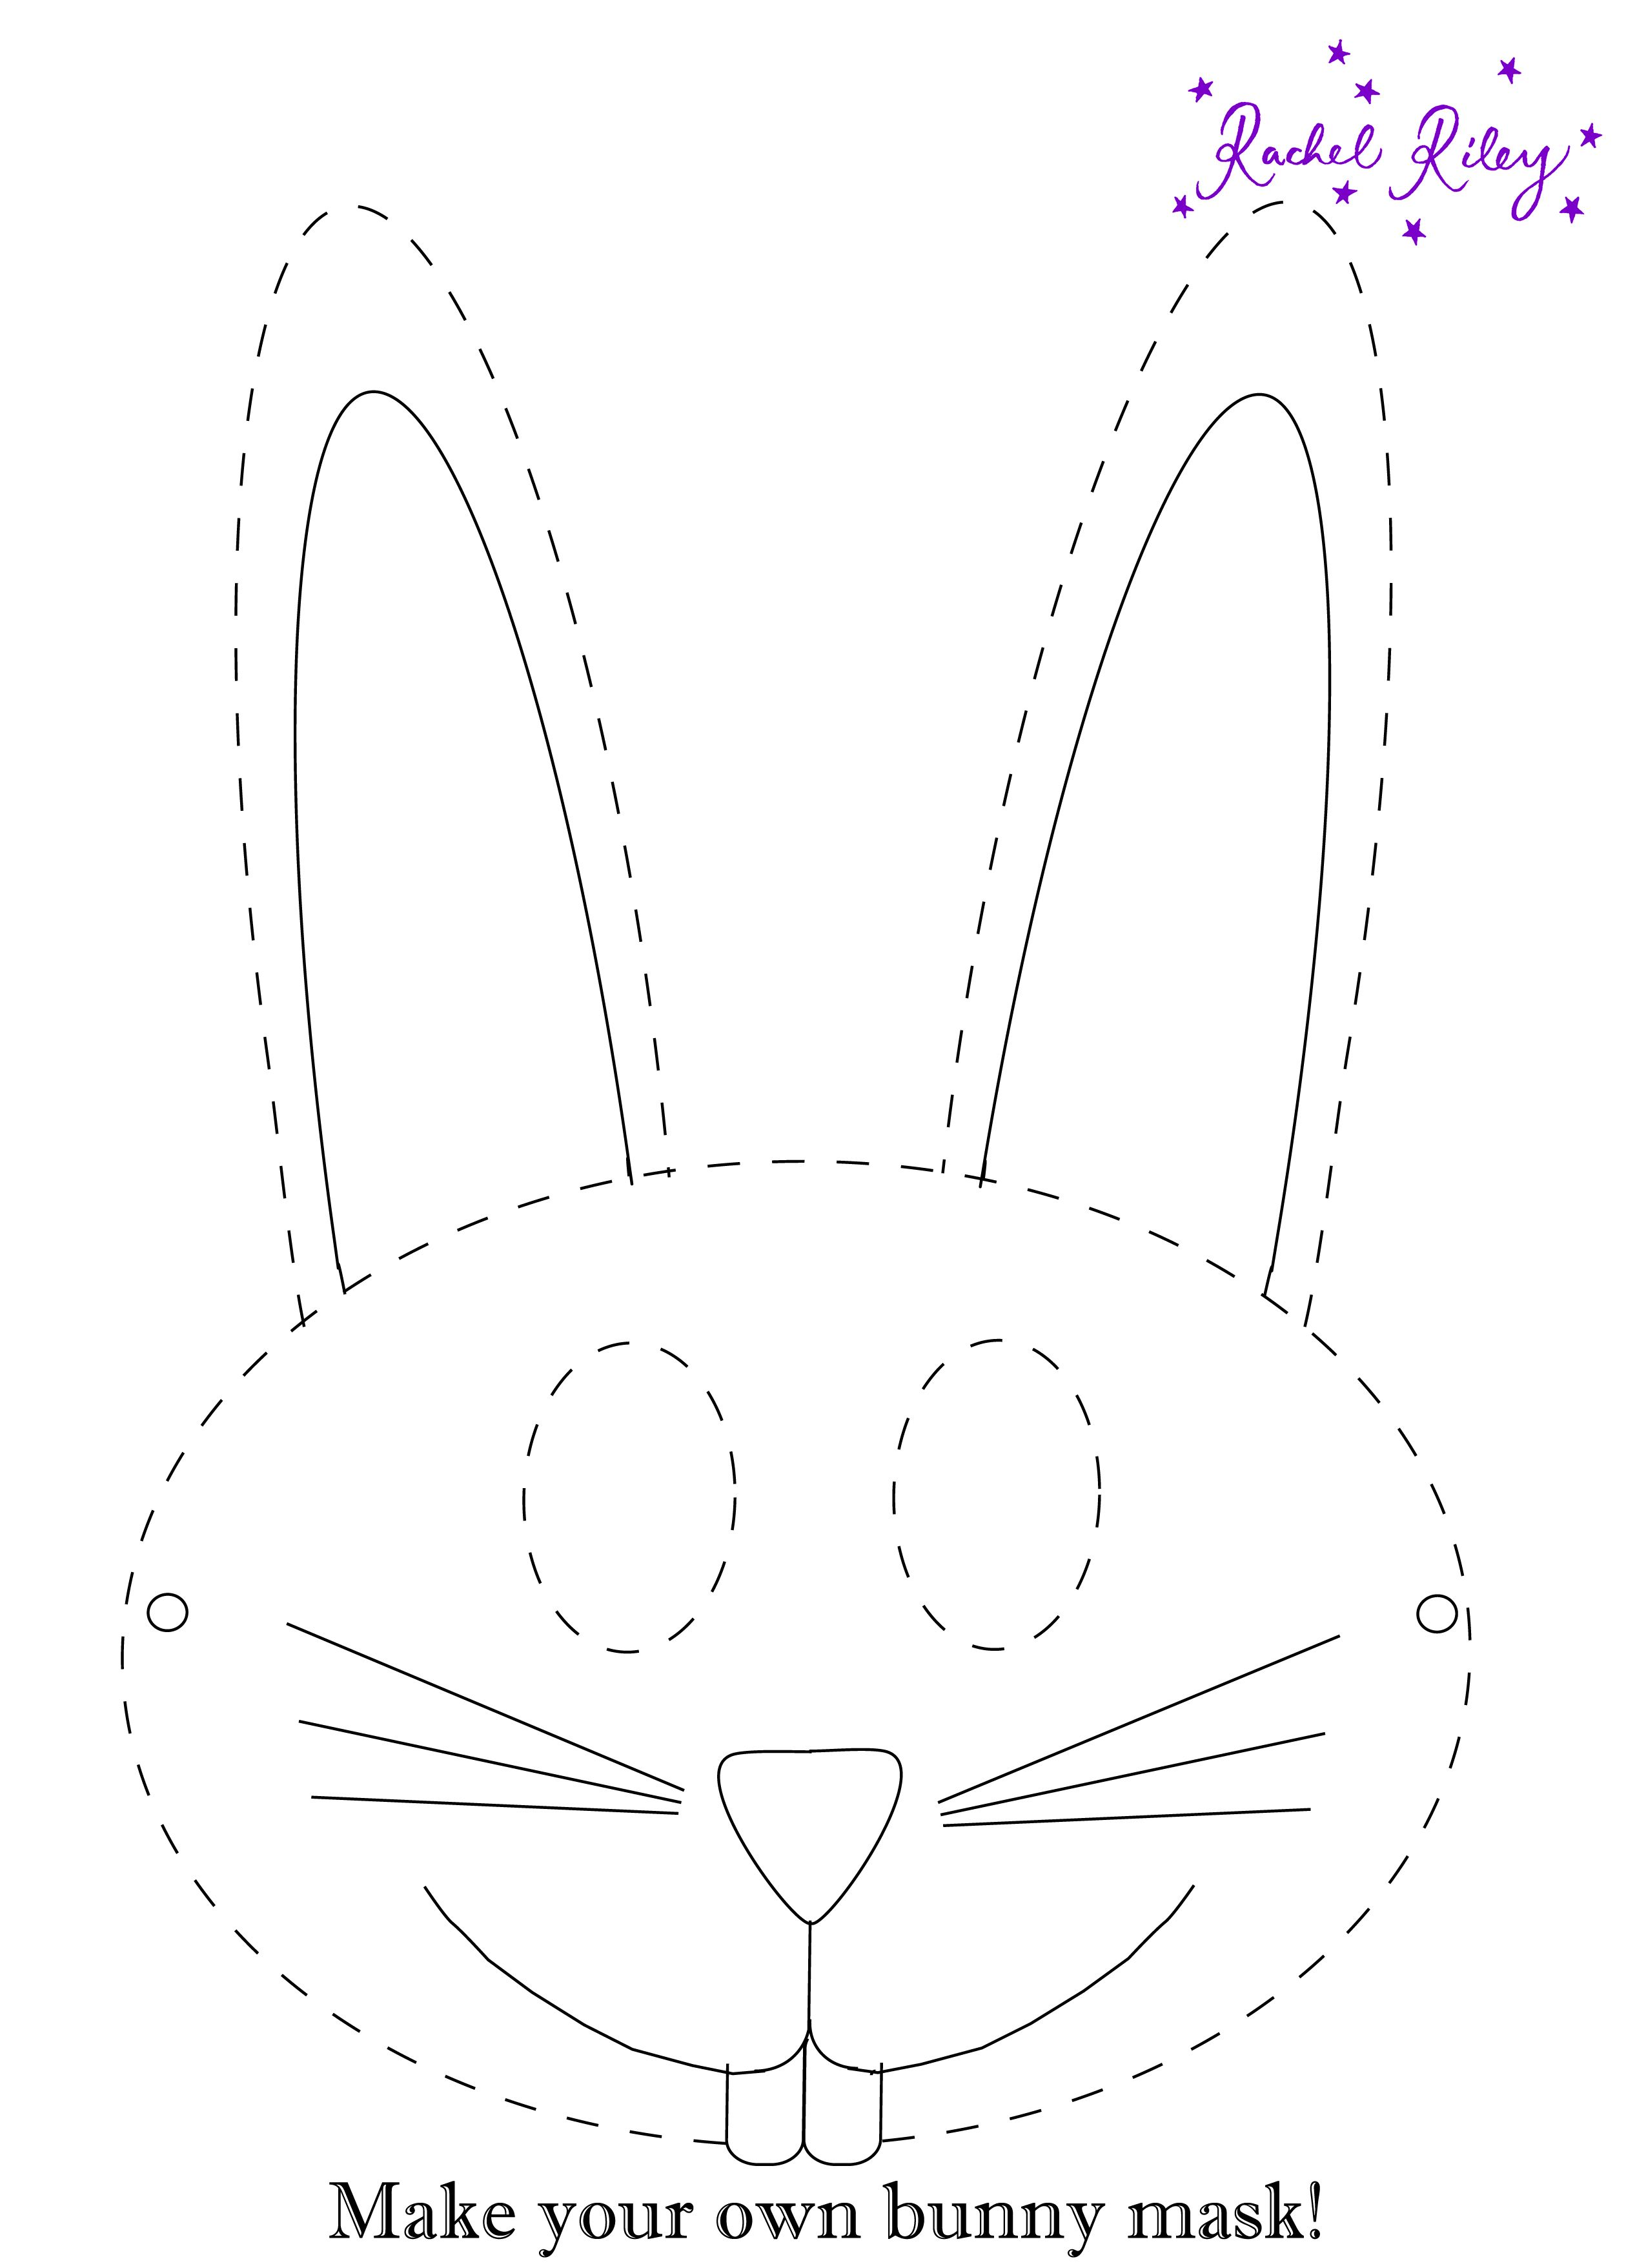 Rachel Riley Activity - Bunny Mask  Print Out And Make Your Own Mask For Easter